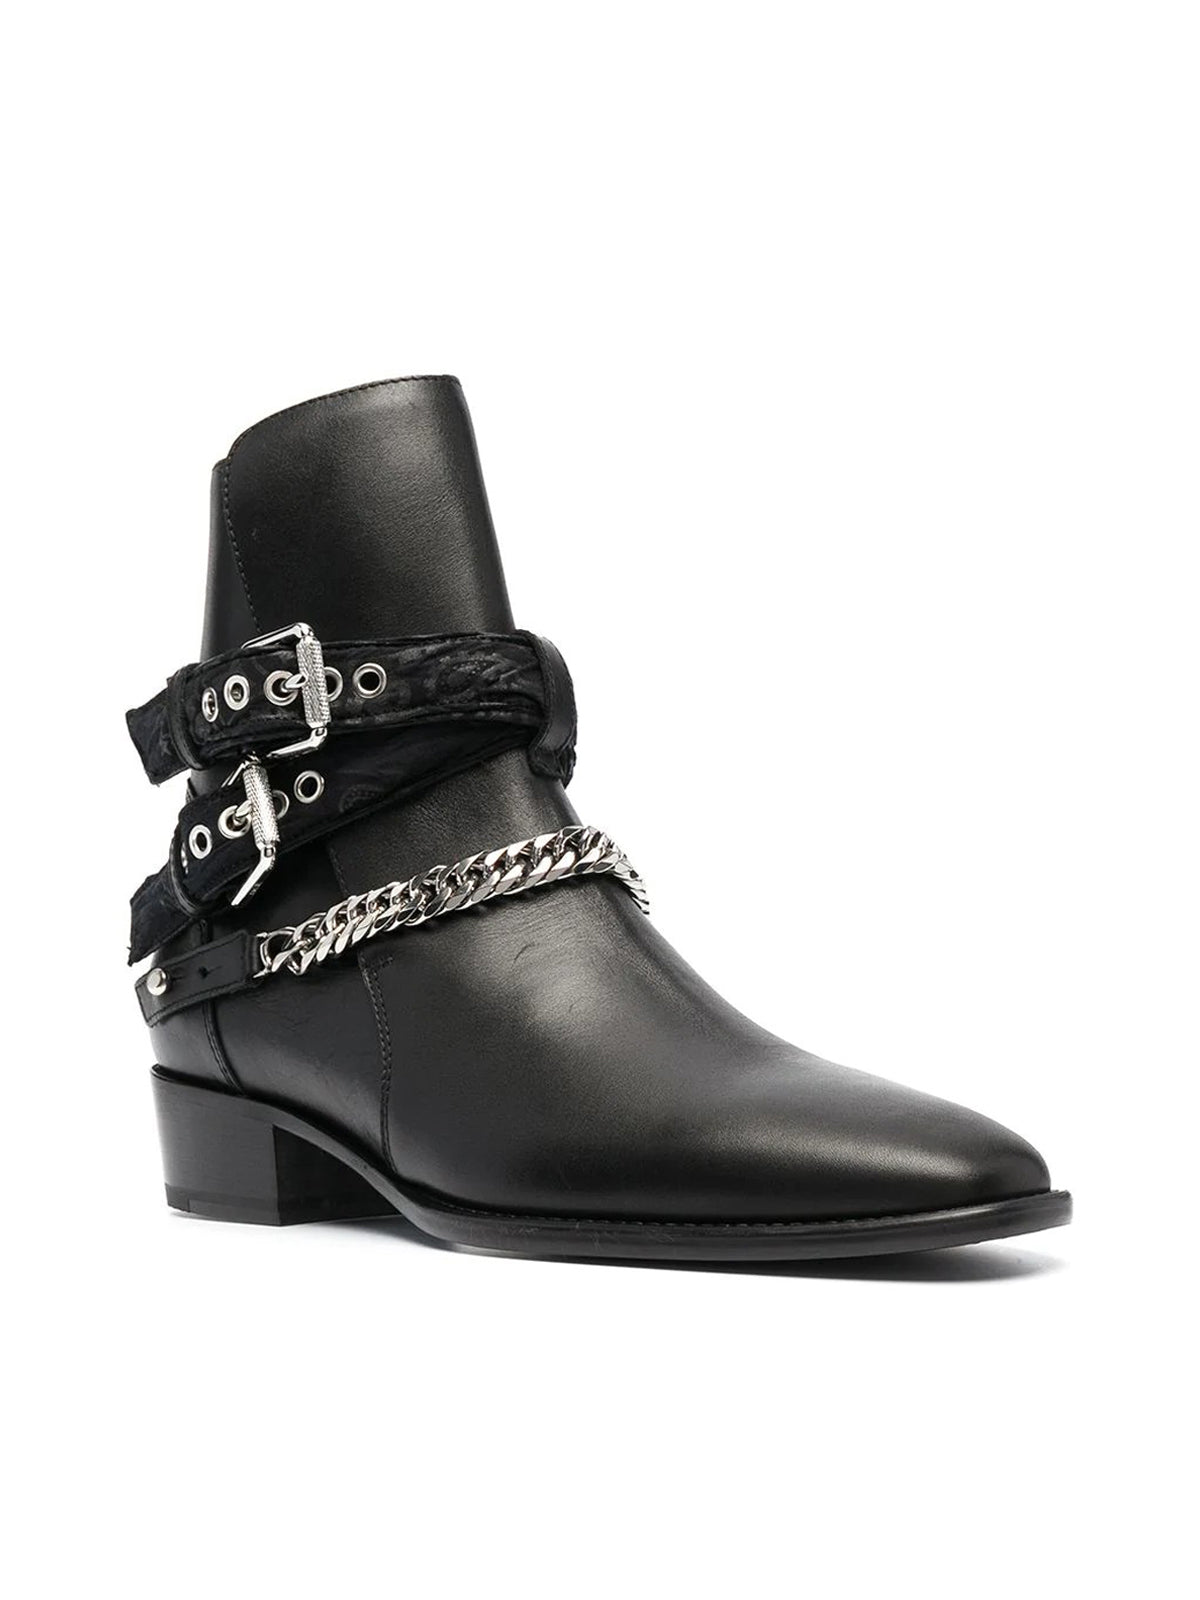 chain detail boots